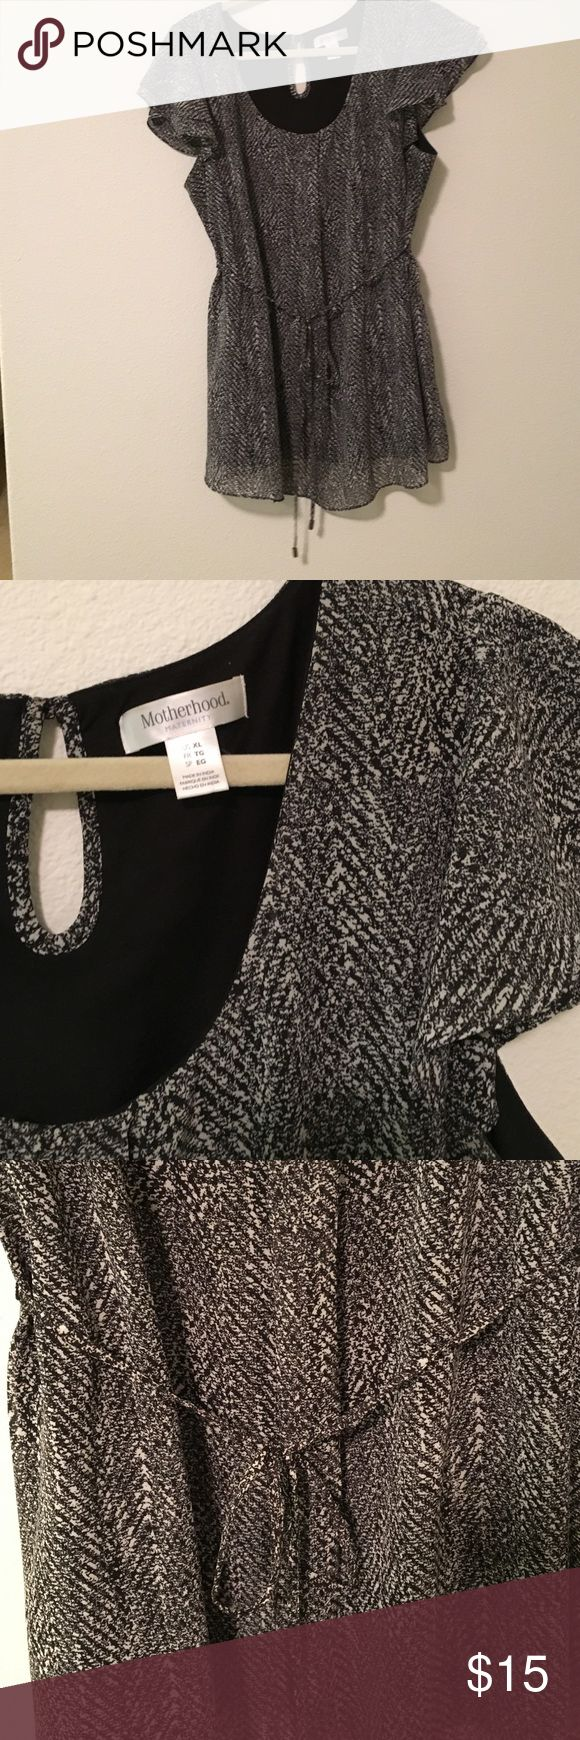 Motherhood Maternity blouse Motherhood Maternity blouse. Perfect for work and presentable. Keeps you cool, especially if you run hot, like I did in my third trimester, or pair with a colorful cardi ! EUC Motherhood Maternity Tops Blouses